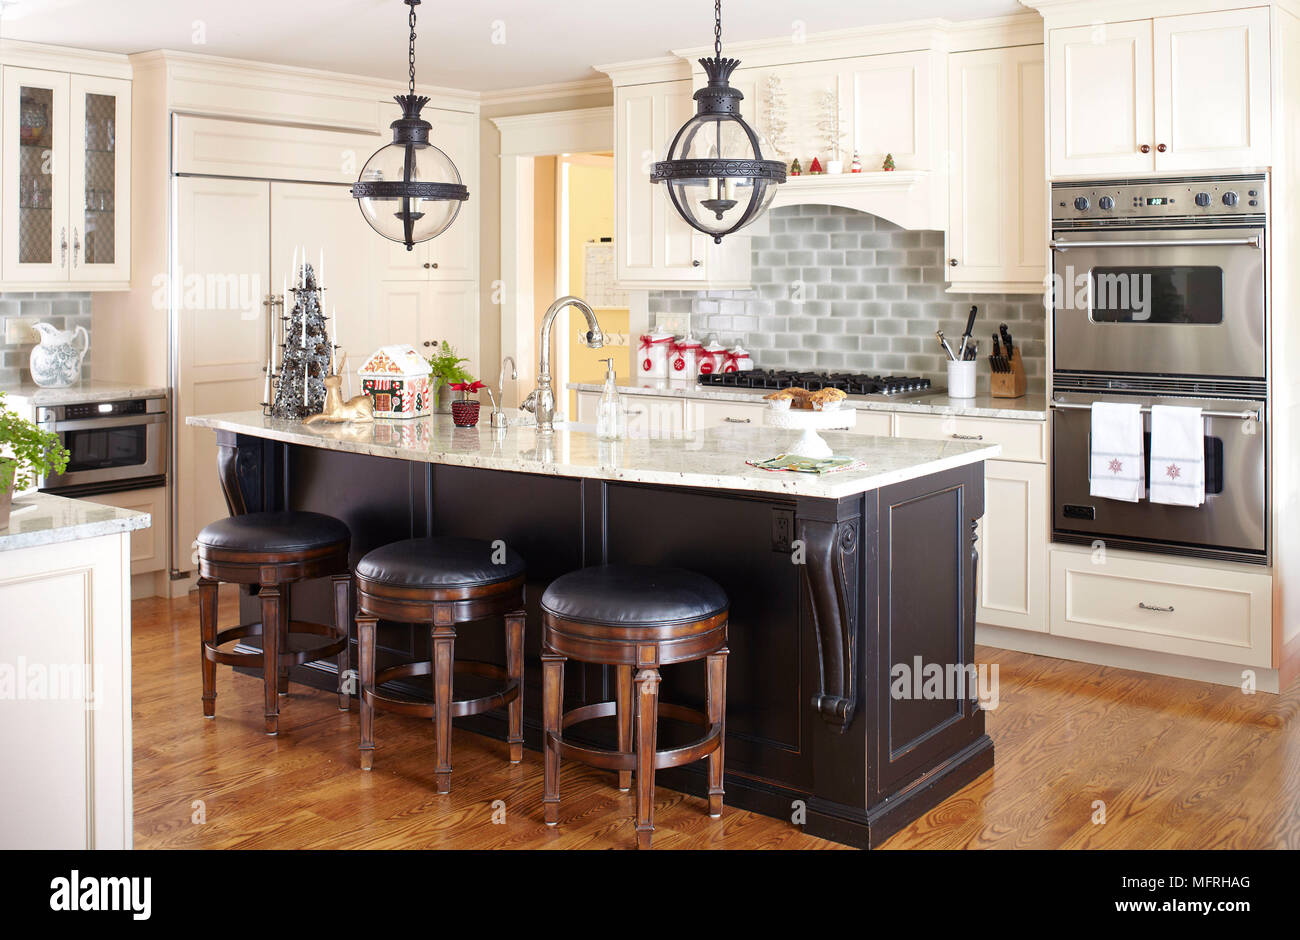 kitchen island stool portable cabinets for small apartments bar stools at breakfast in traditional style fairfield new jersey usa